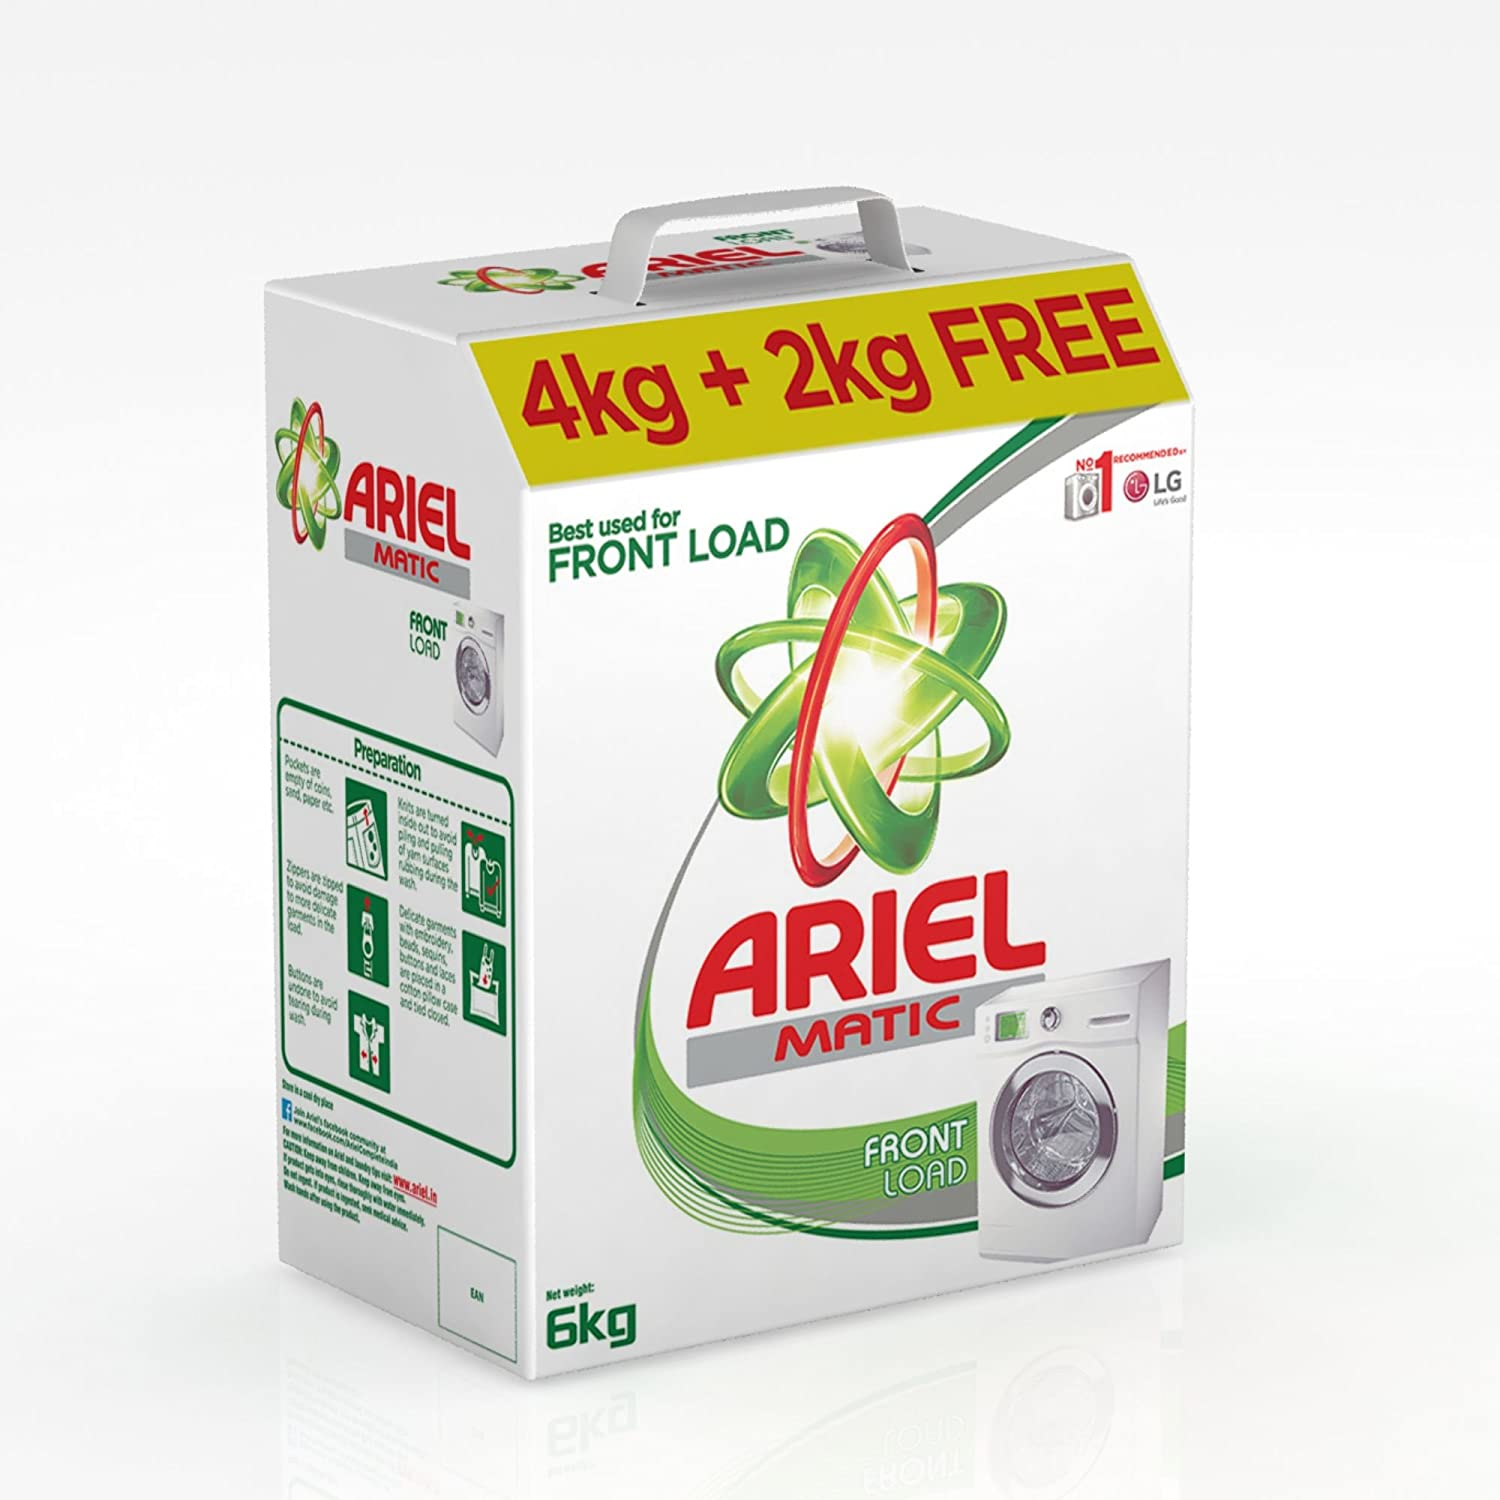 Ariel Matic Front Load Detergent Powder, 4kg